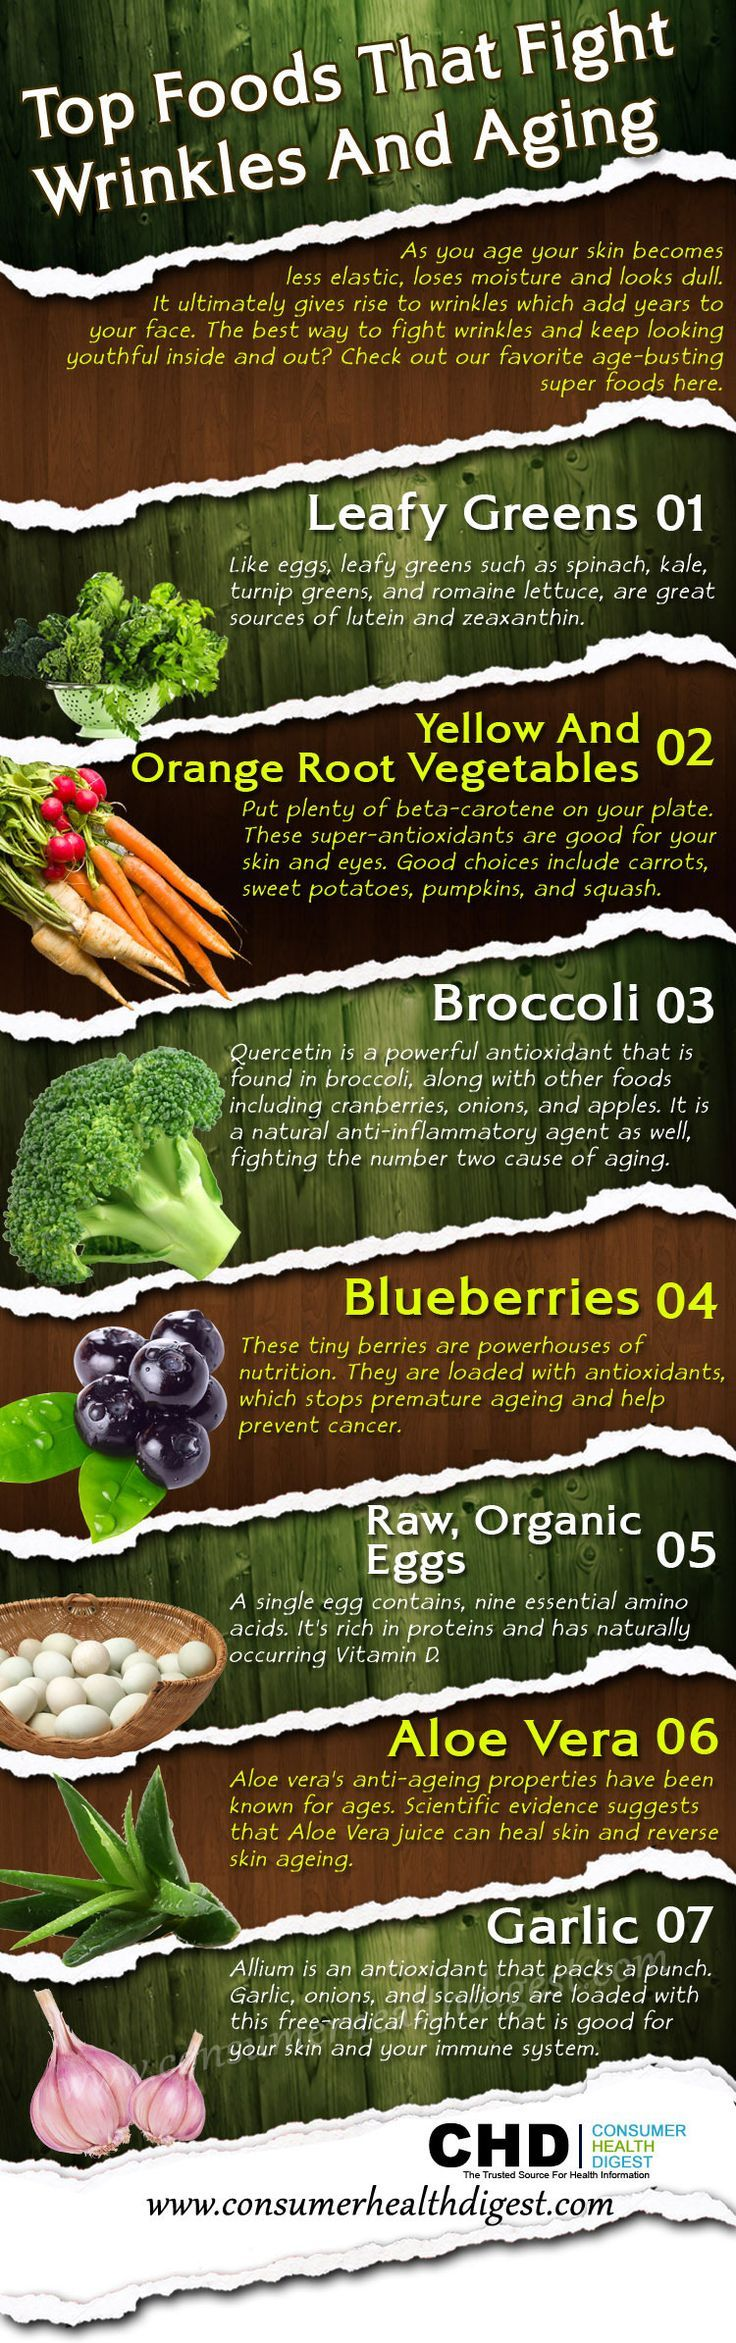 Top Foods That Fight Wrinkles and Aging (and promote an overall healthy well-being) #beautyfromtheinsideout #beauty